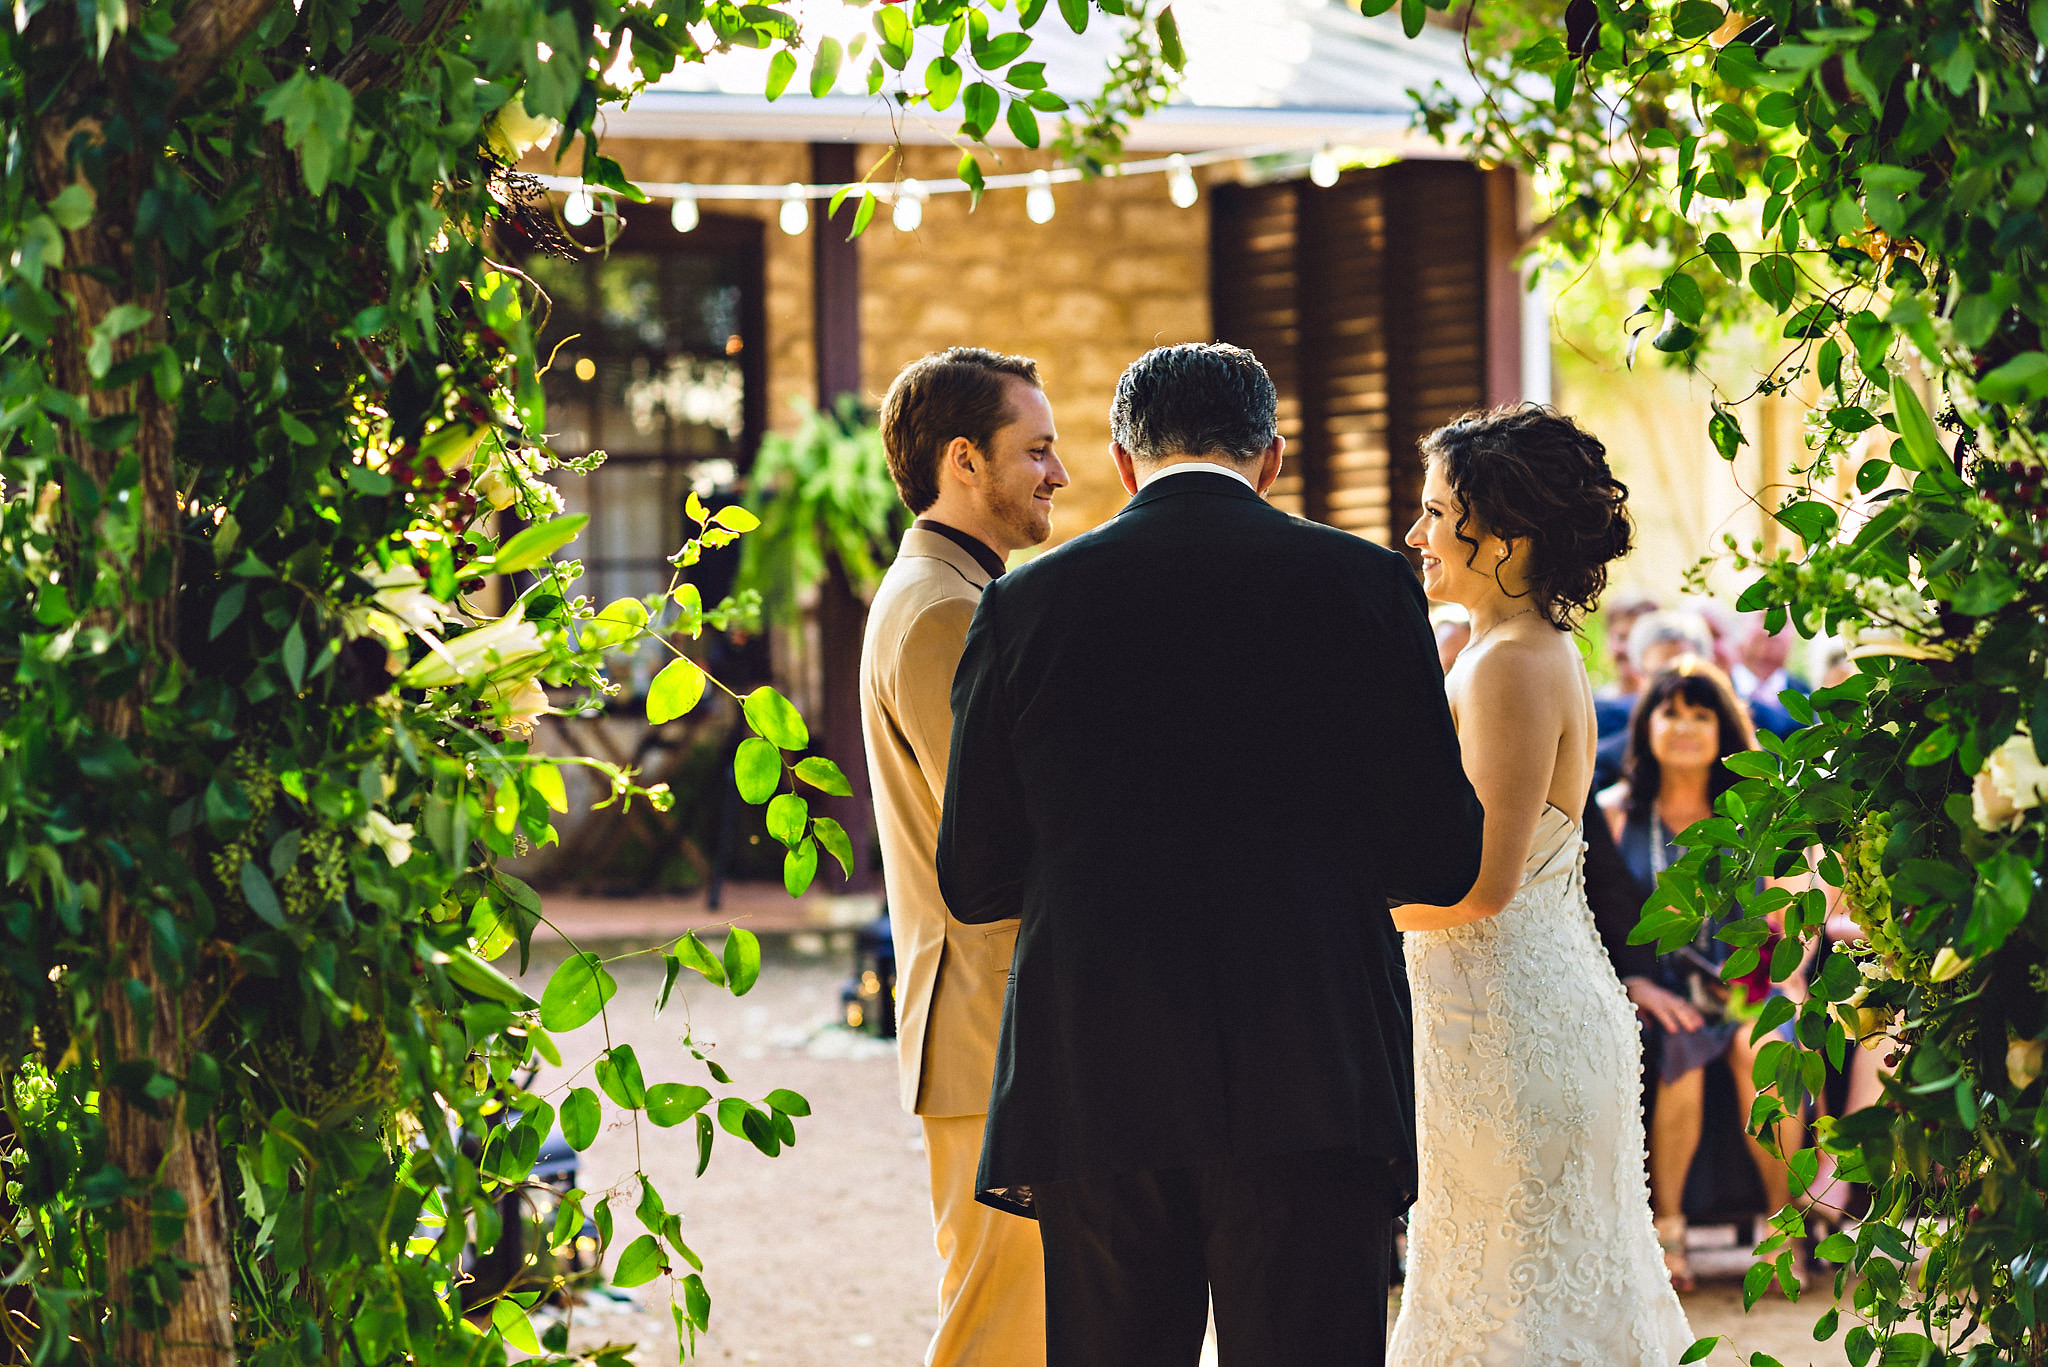 Eirik Halvorsen rustic wedding Fredericksburg Austin Texas wedding photographer-37.jpg